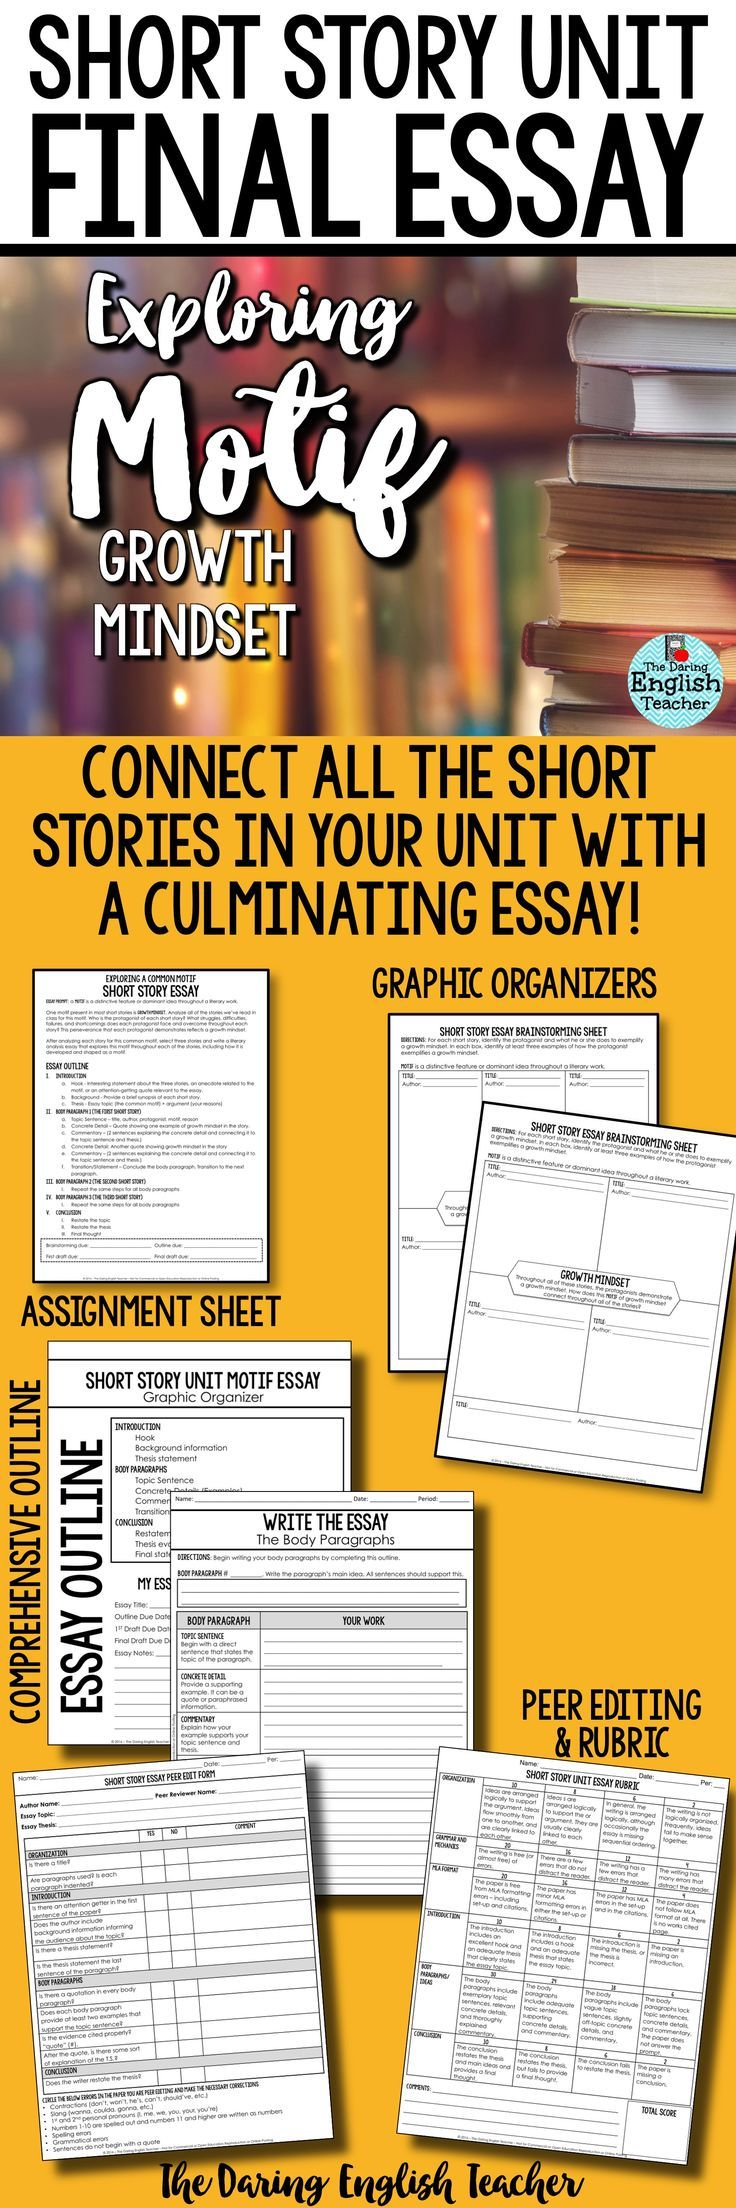 top ideas about short stories for high school students on explore and cultivate a growth mindset in your secondary english classroom this short story essay